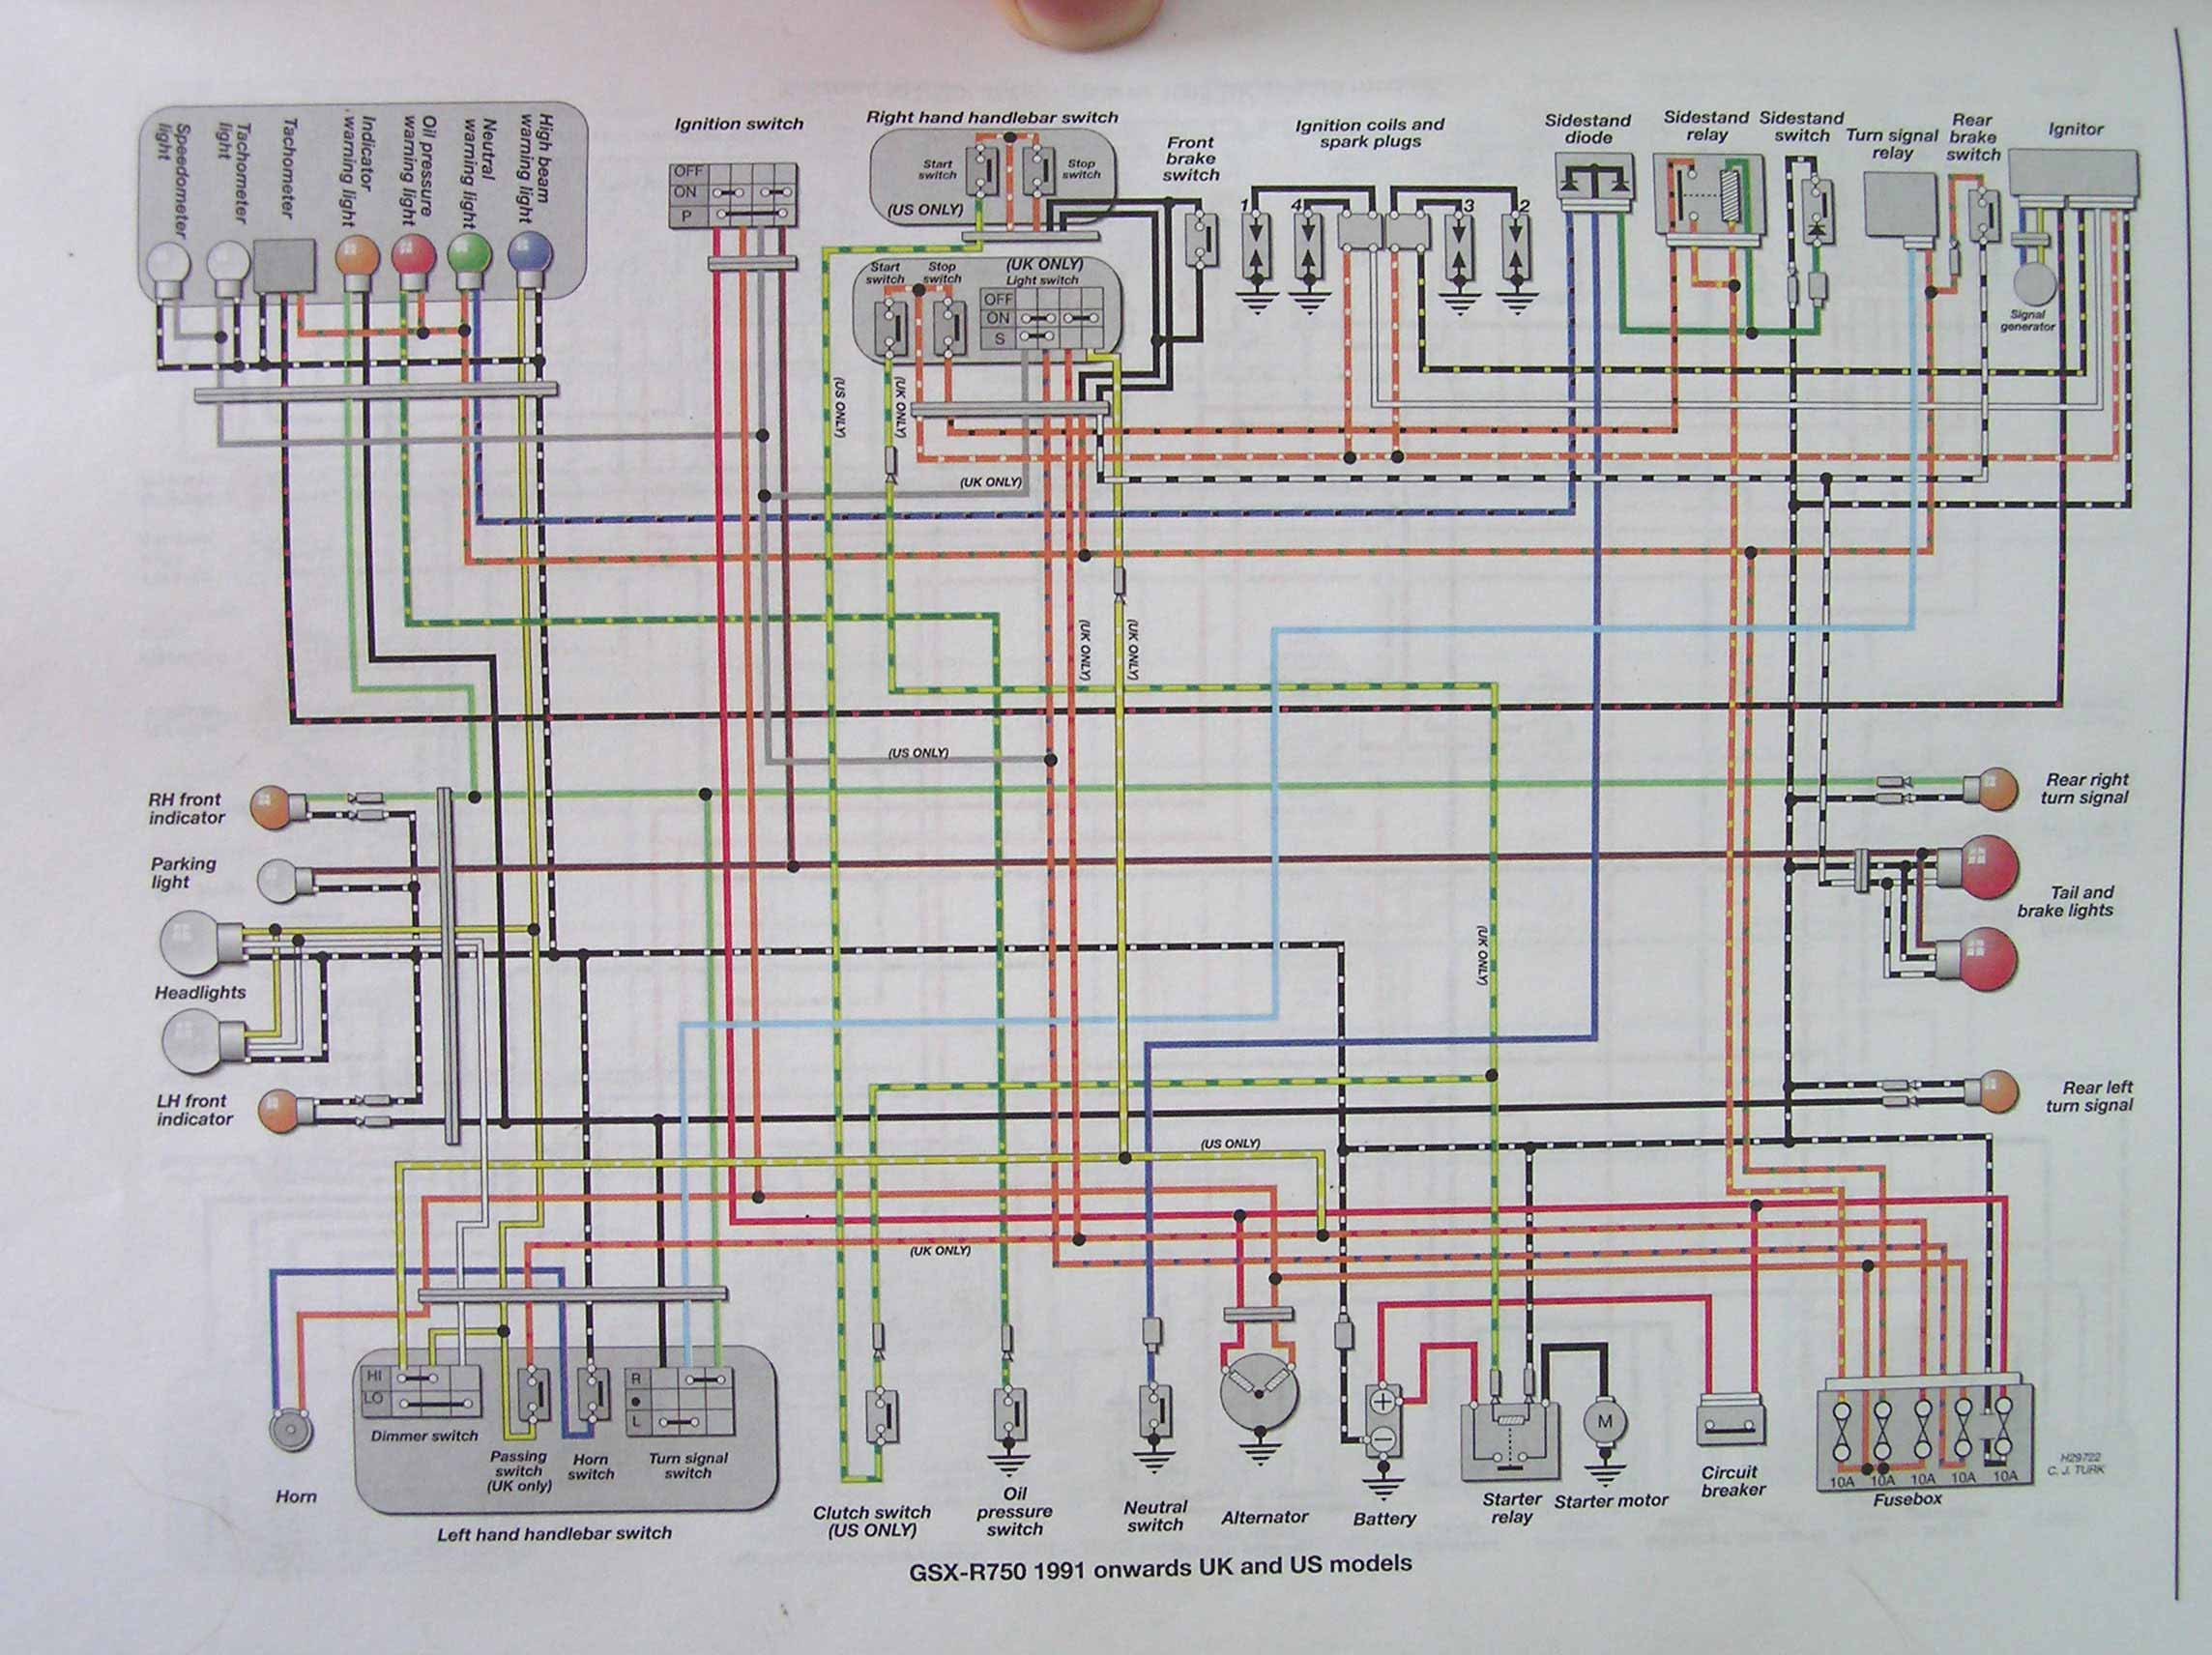 2004 gsxr 600 headlight wiring diagram 2001 chevrolet cavalier radio 2000 750 free engine image for